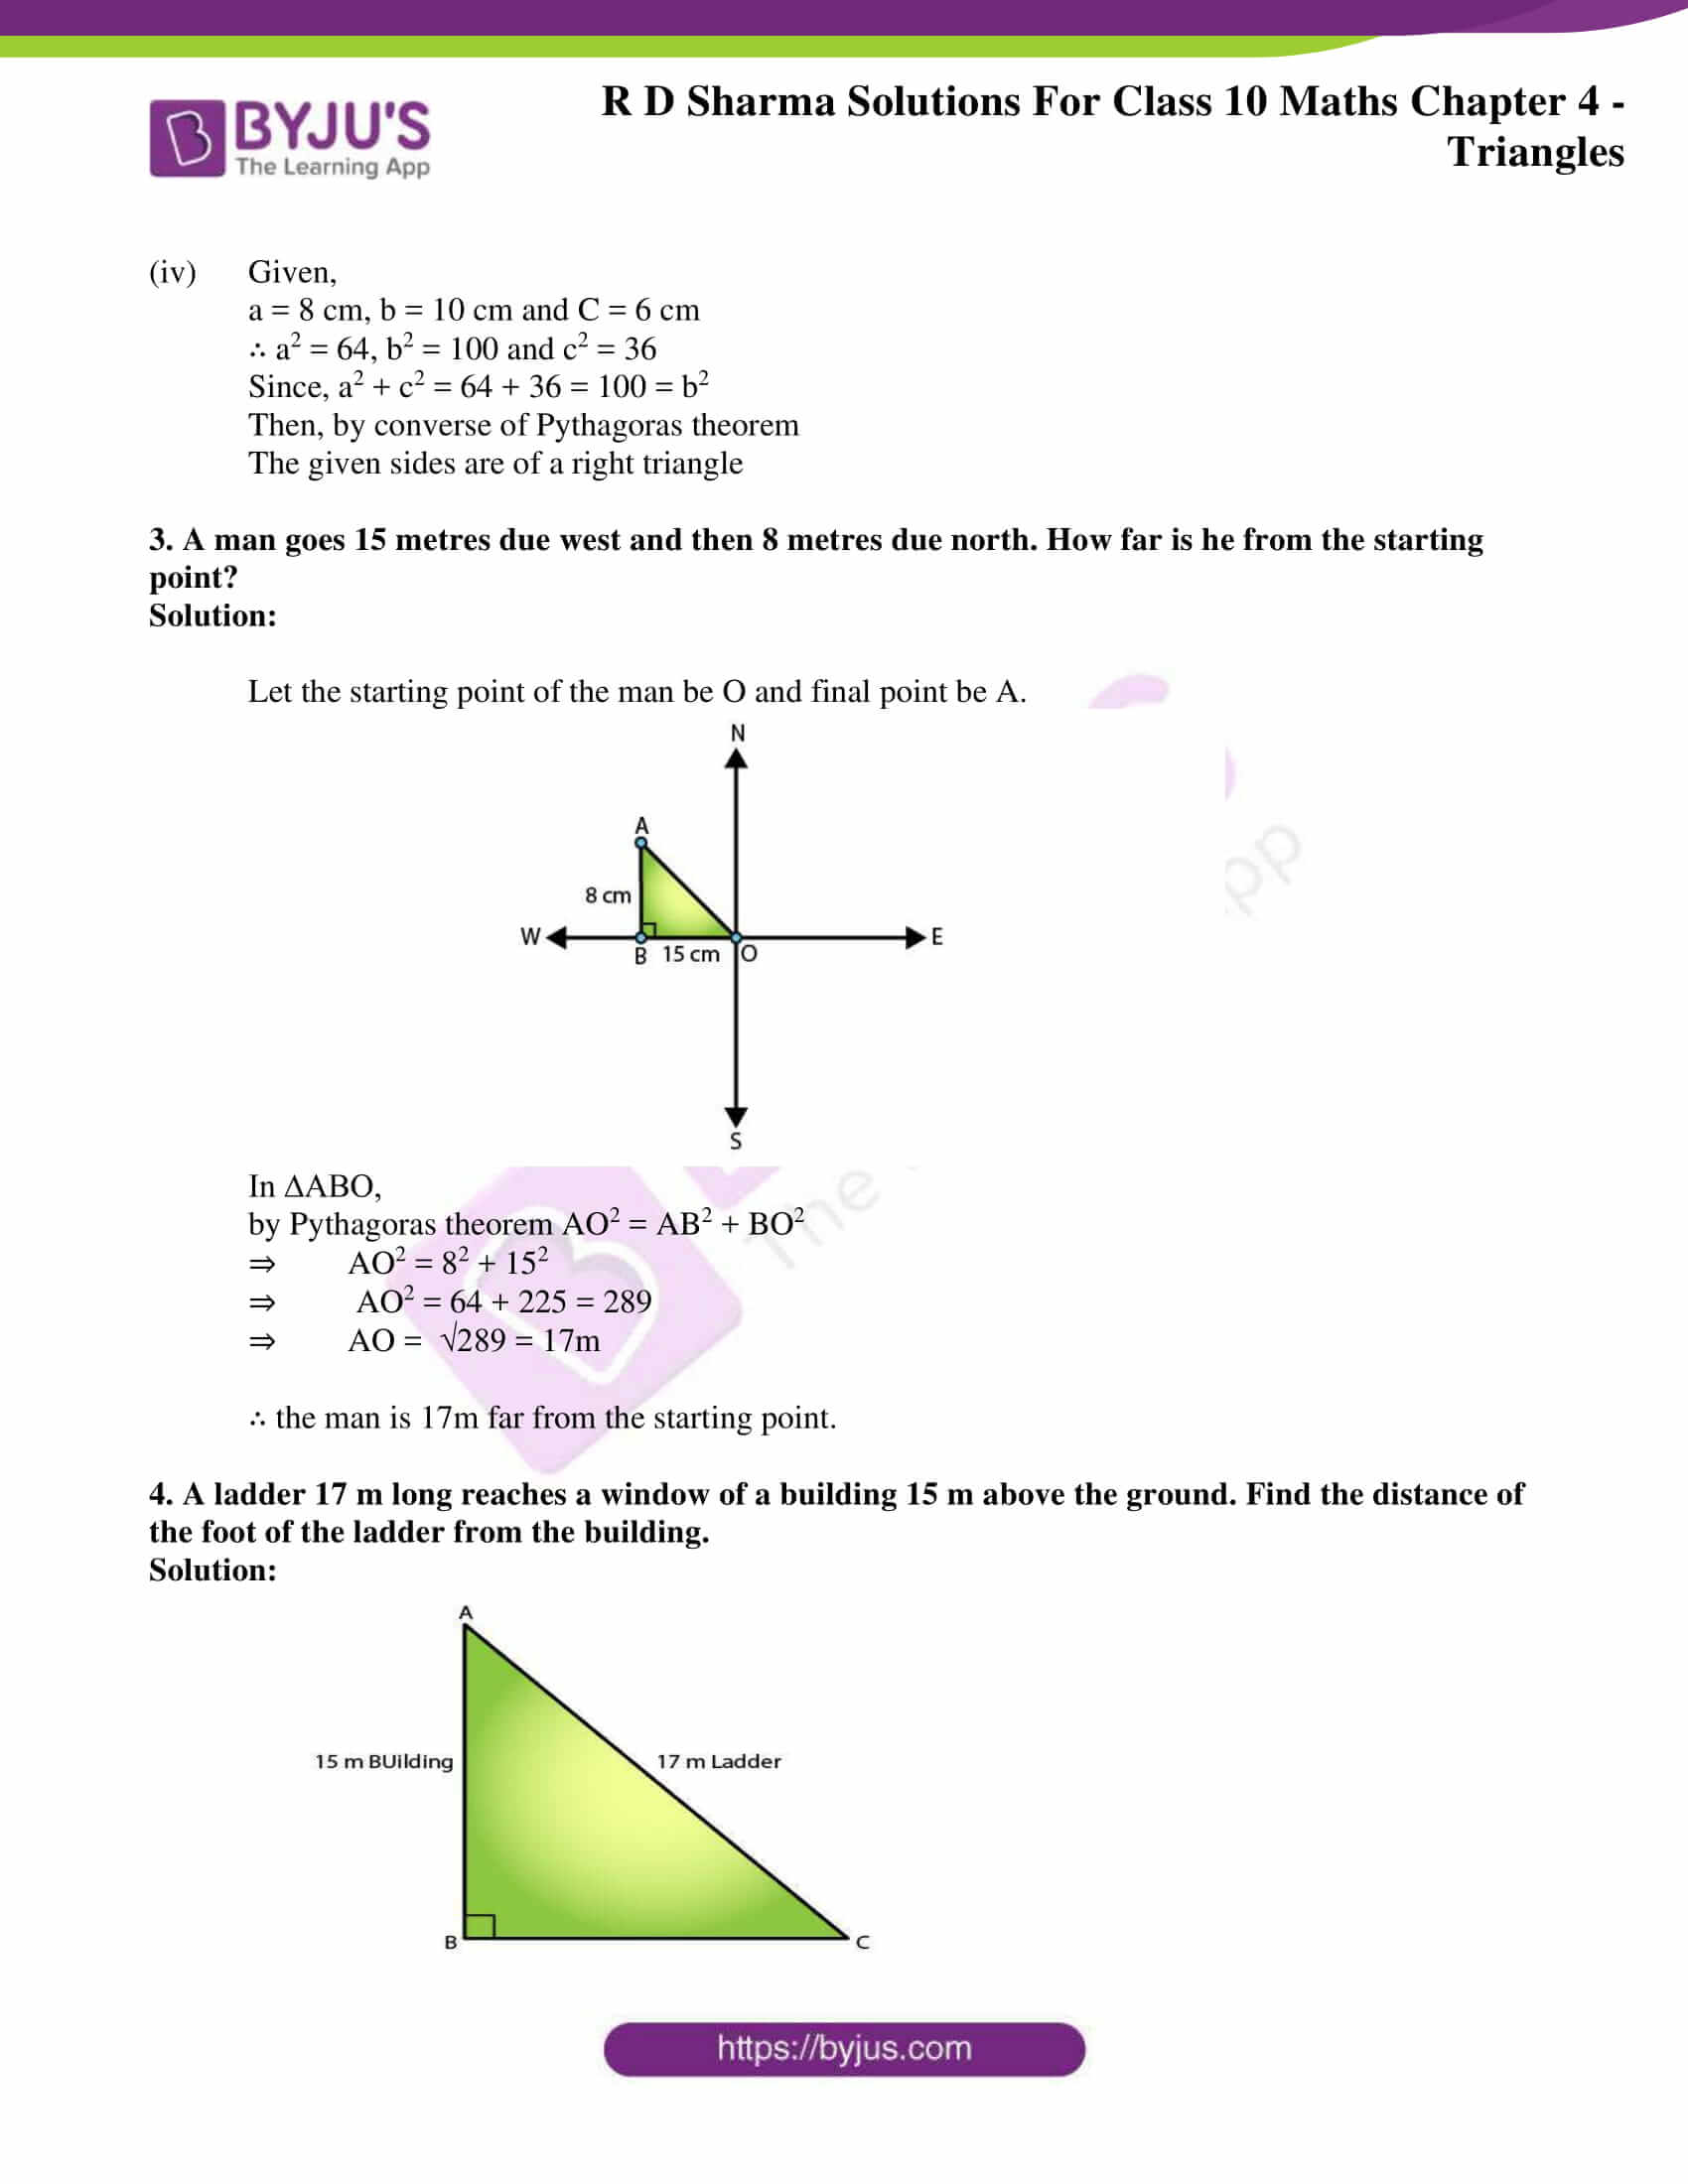 rd sharma solutions for class 10 chapter 4